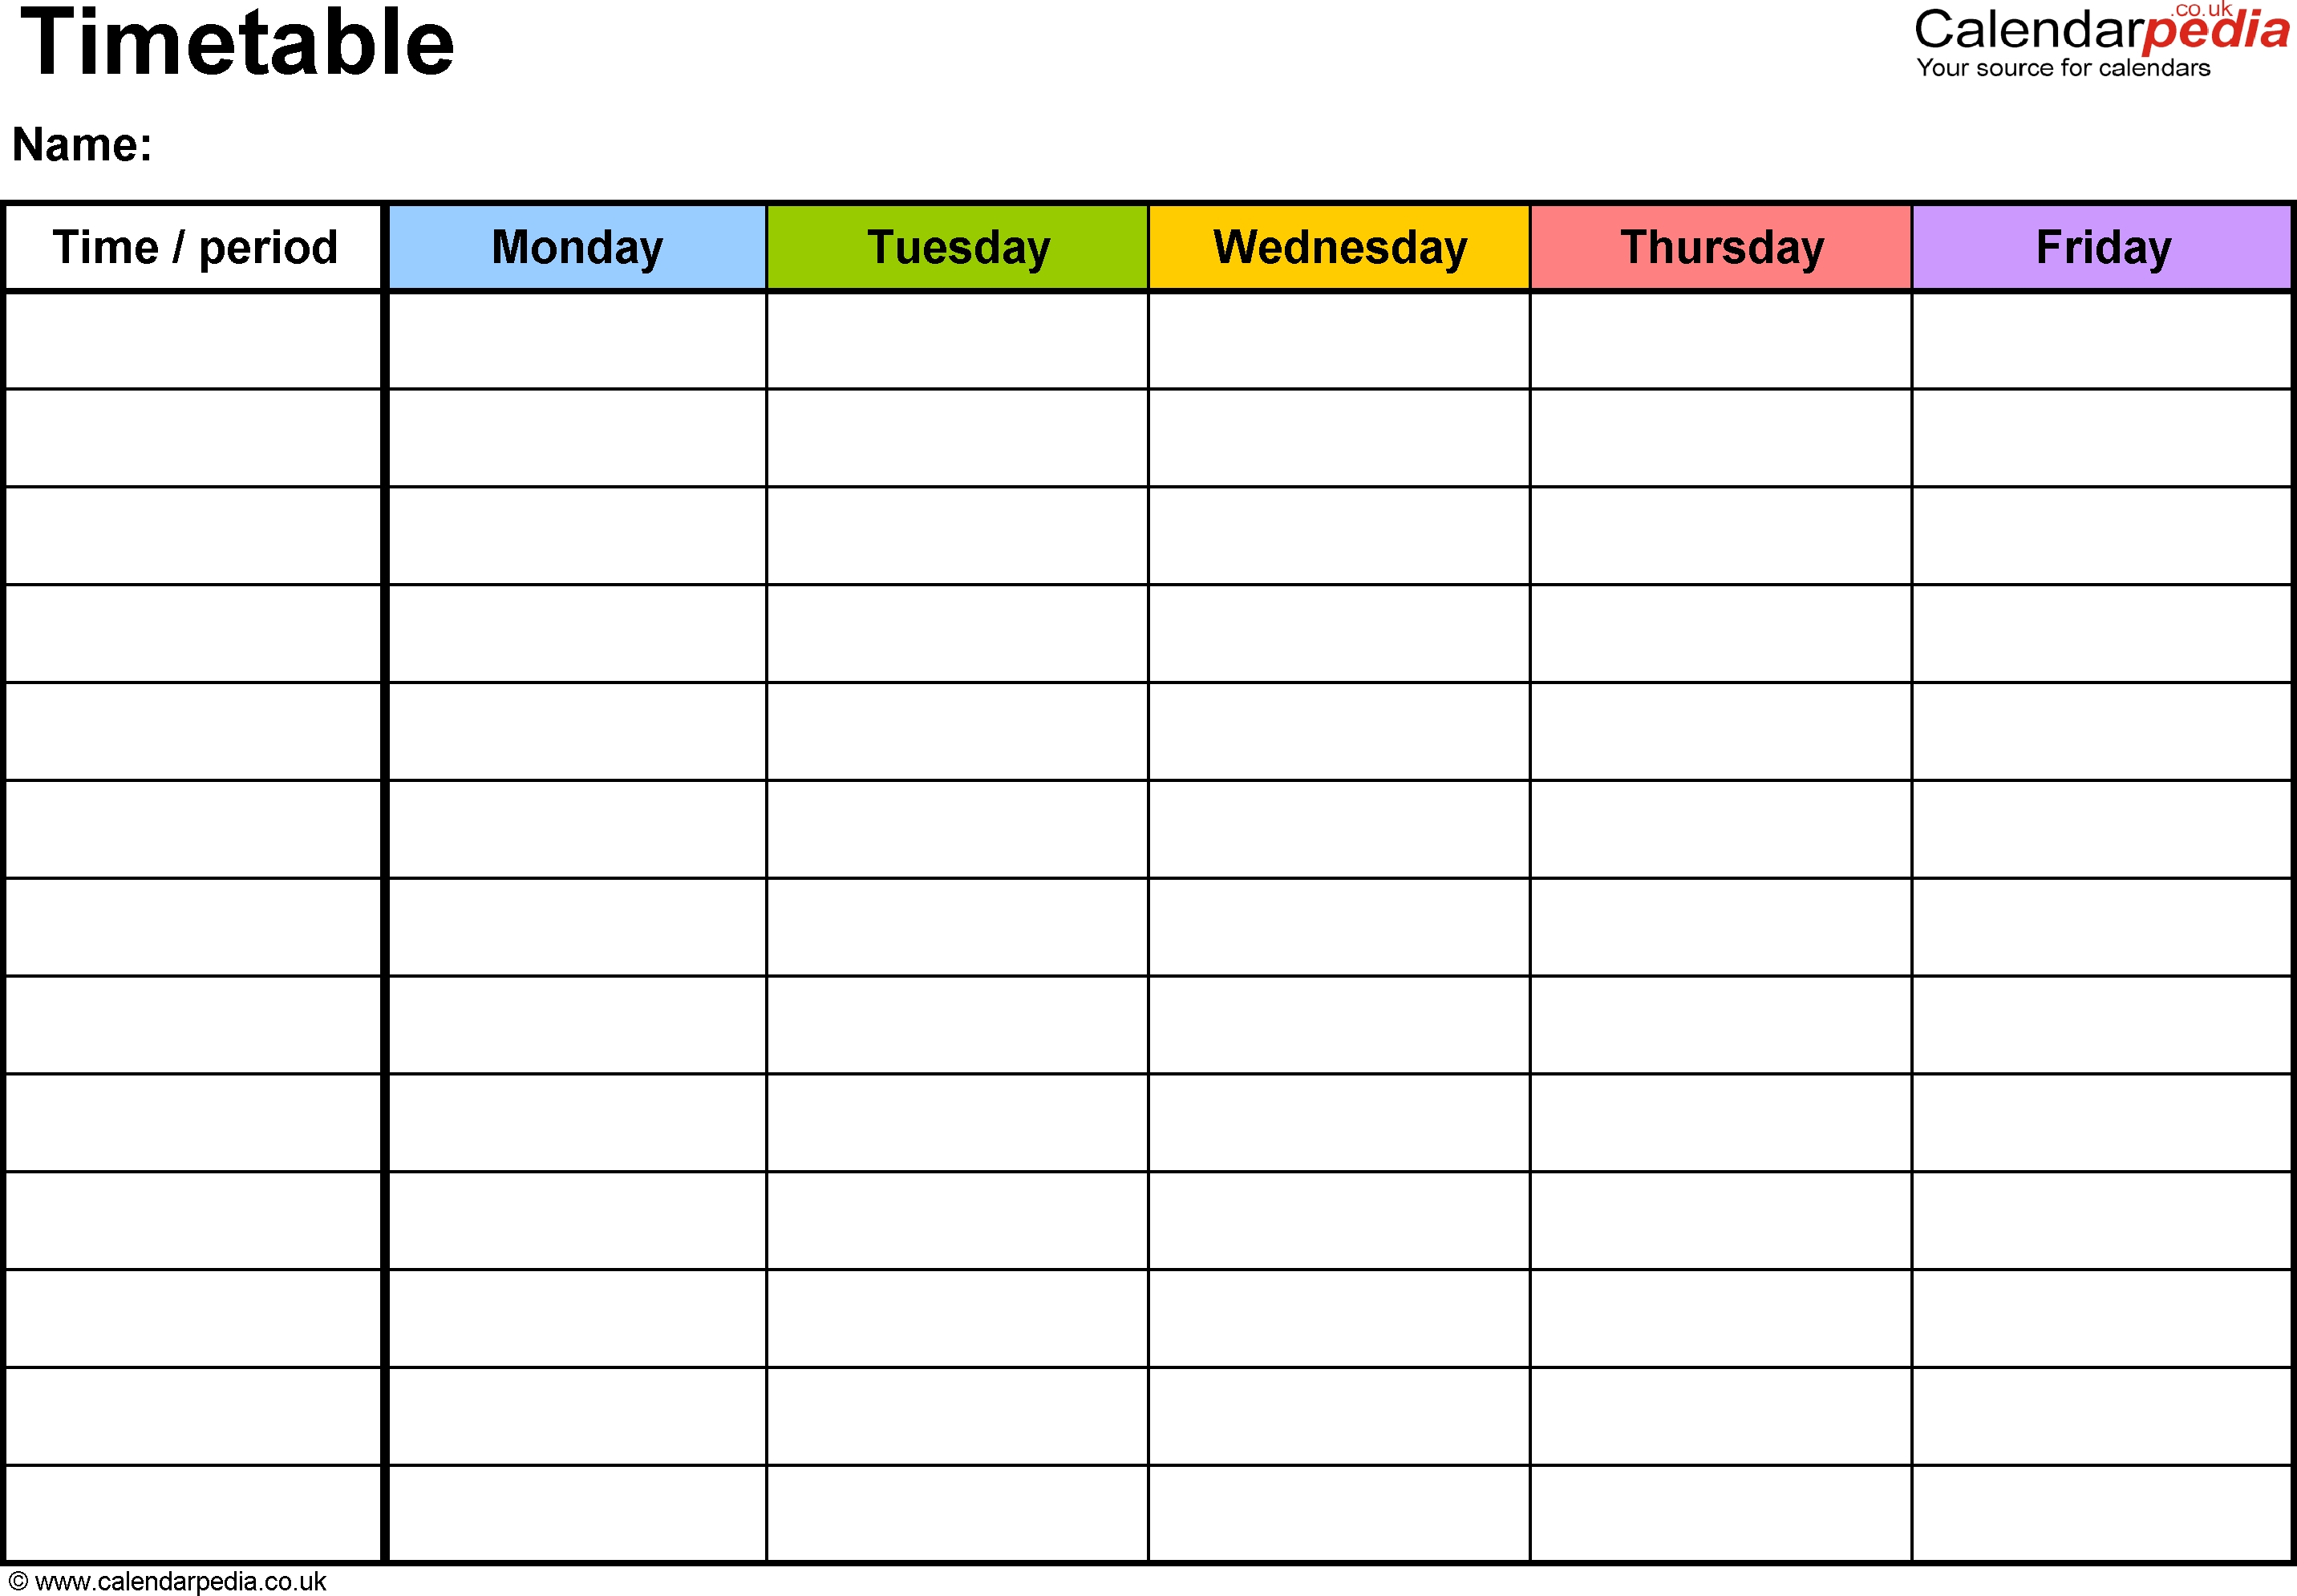 Pdf Timetable Template 2: Landscape Format, A4, 1 Page-Blank Calendar Monday To Friday